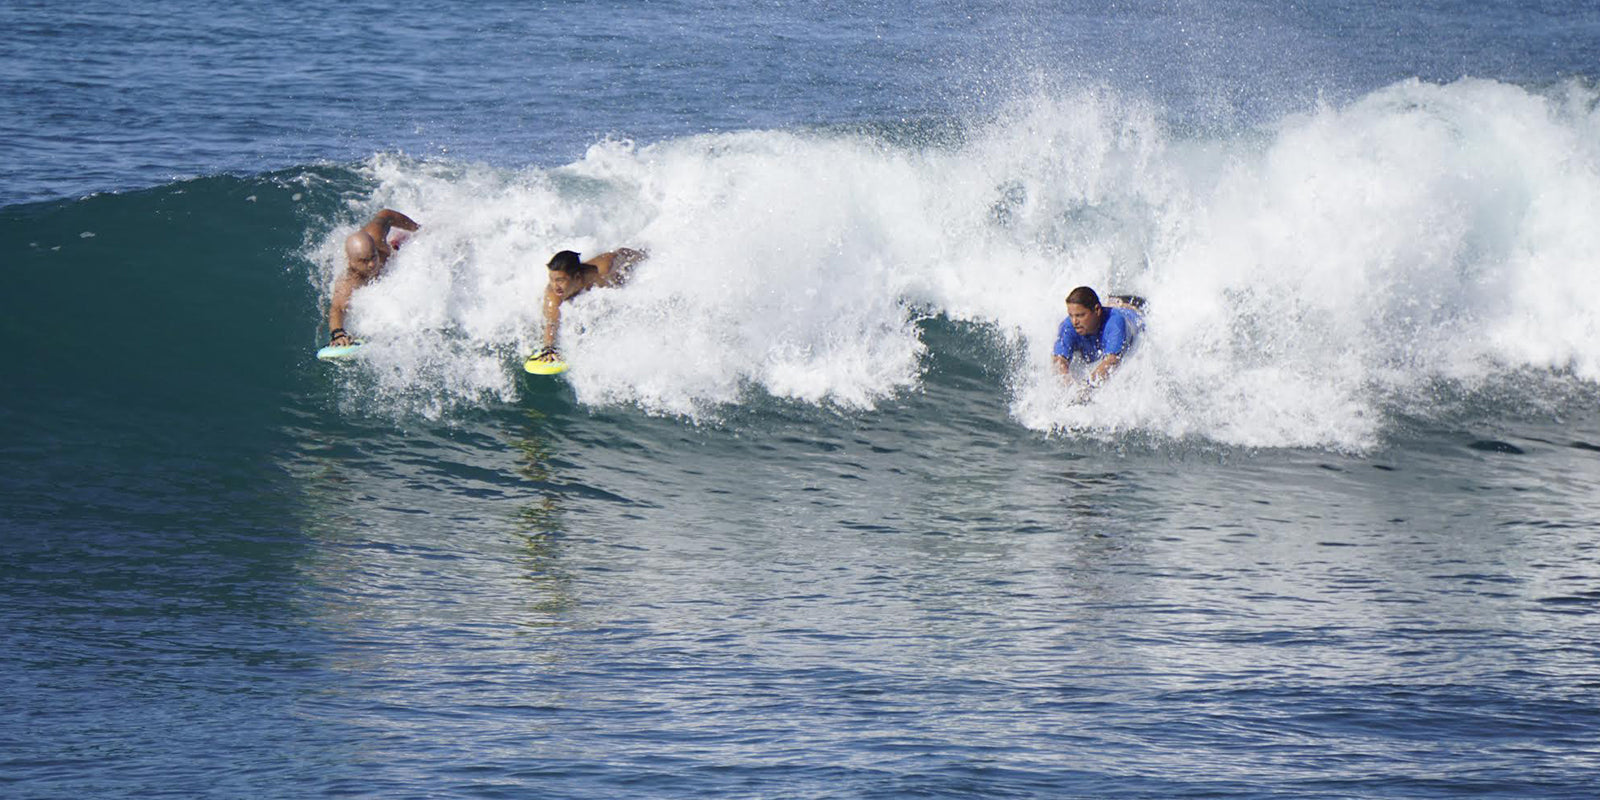 Slyde Handboards Customers: Share With Us Their Surfing Experience Pre-Handboarding